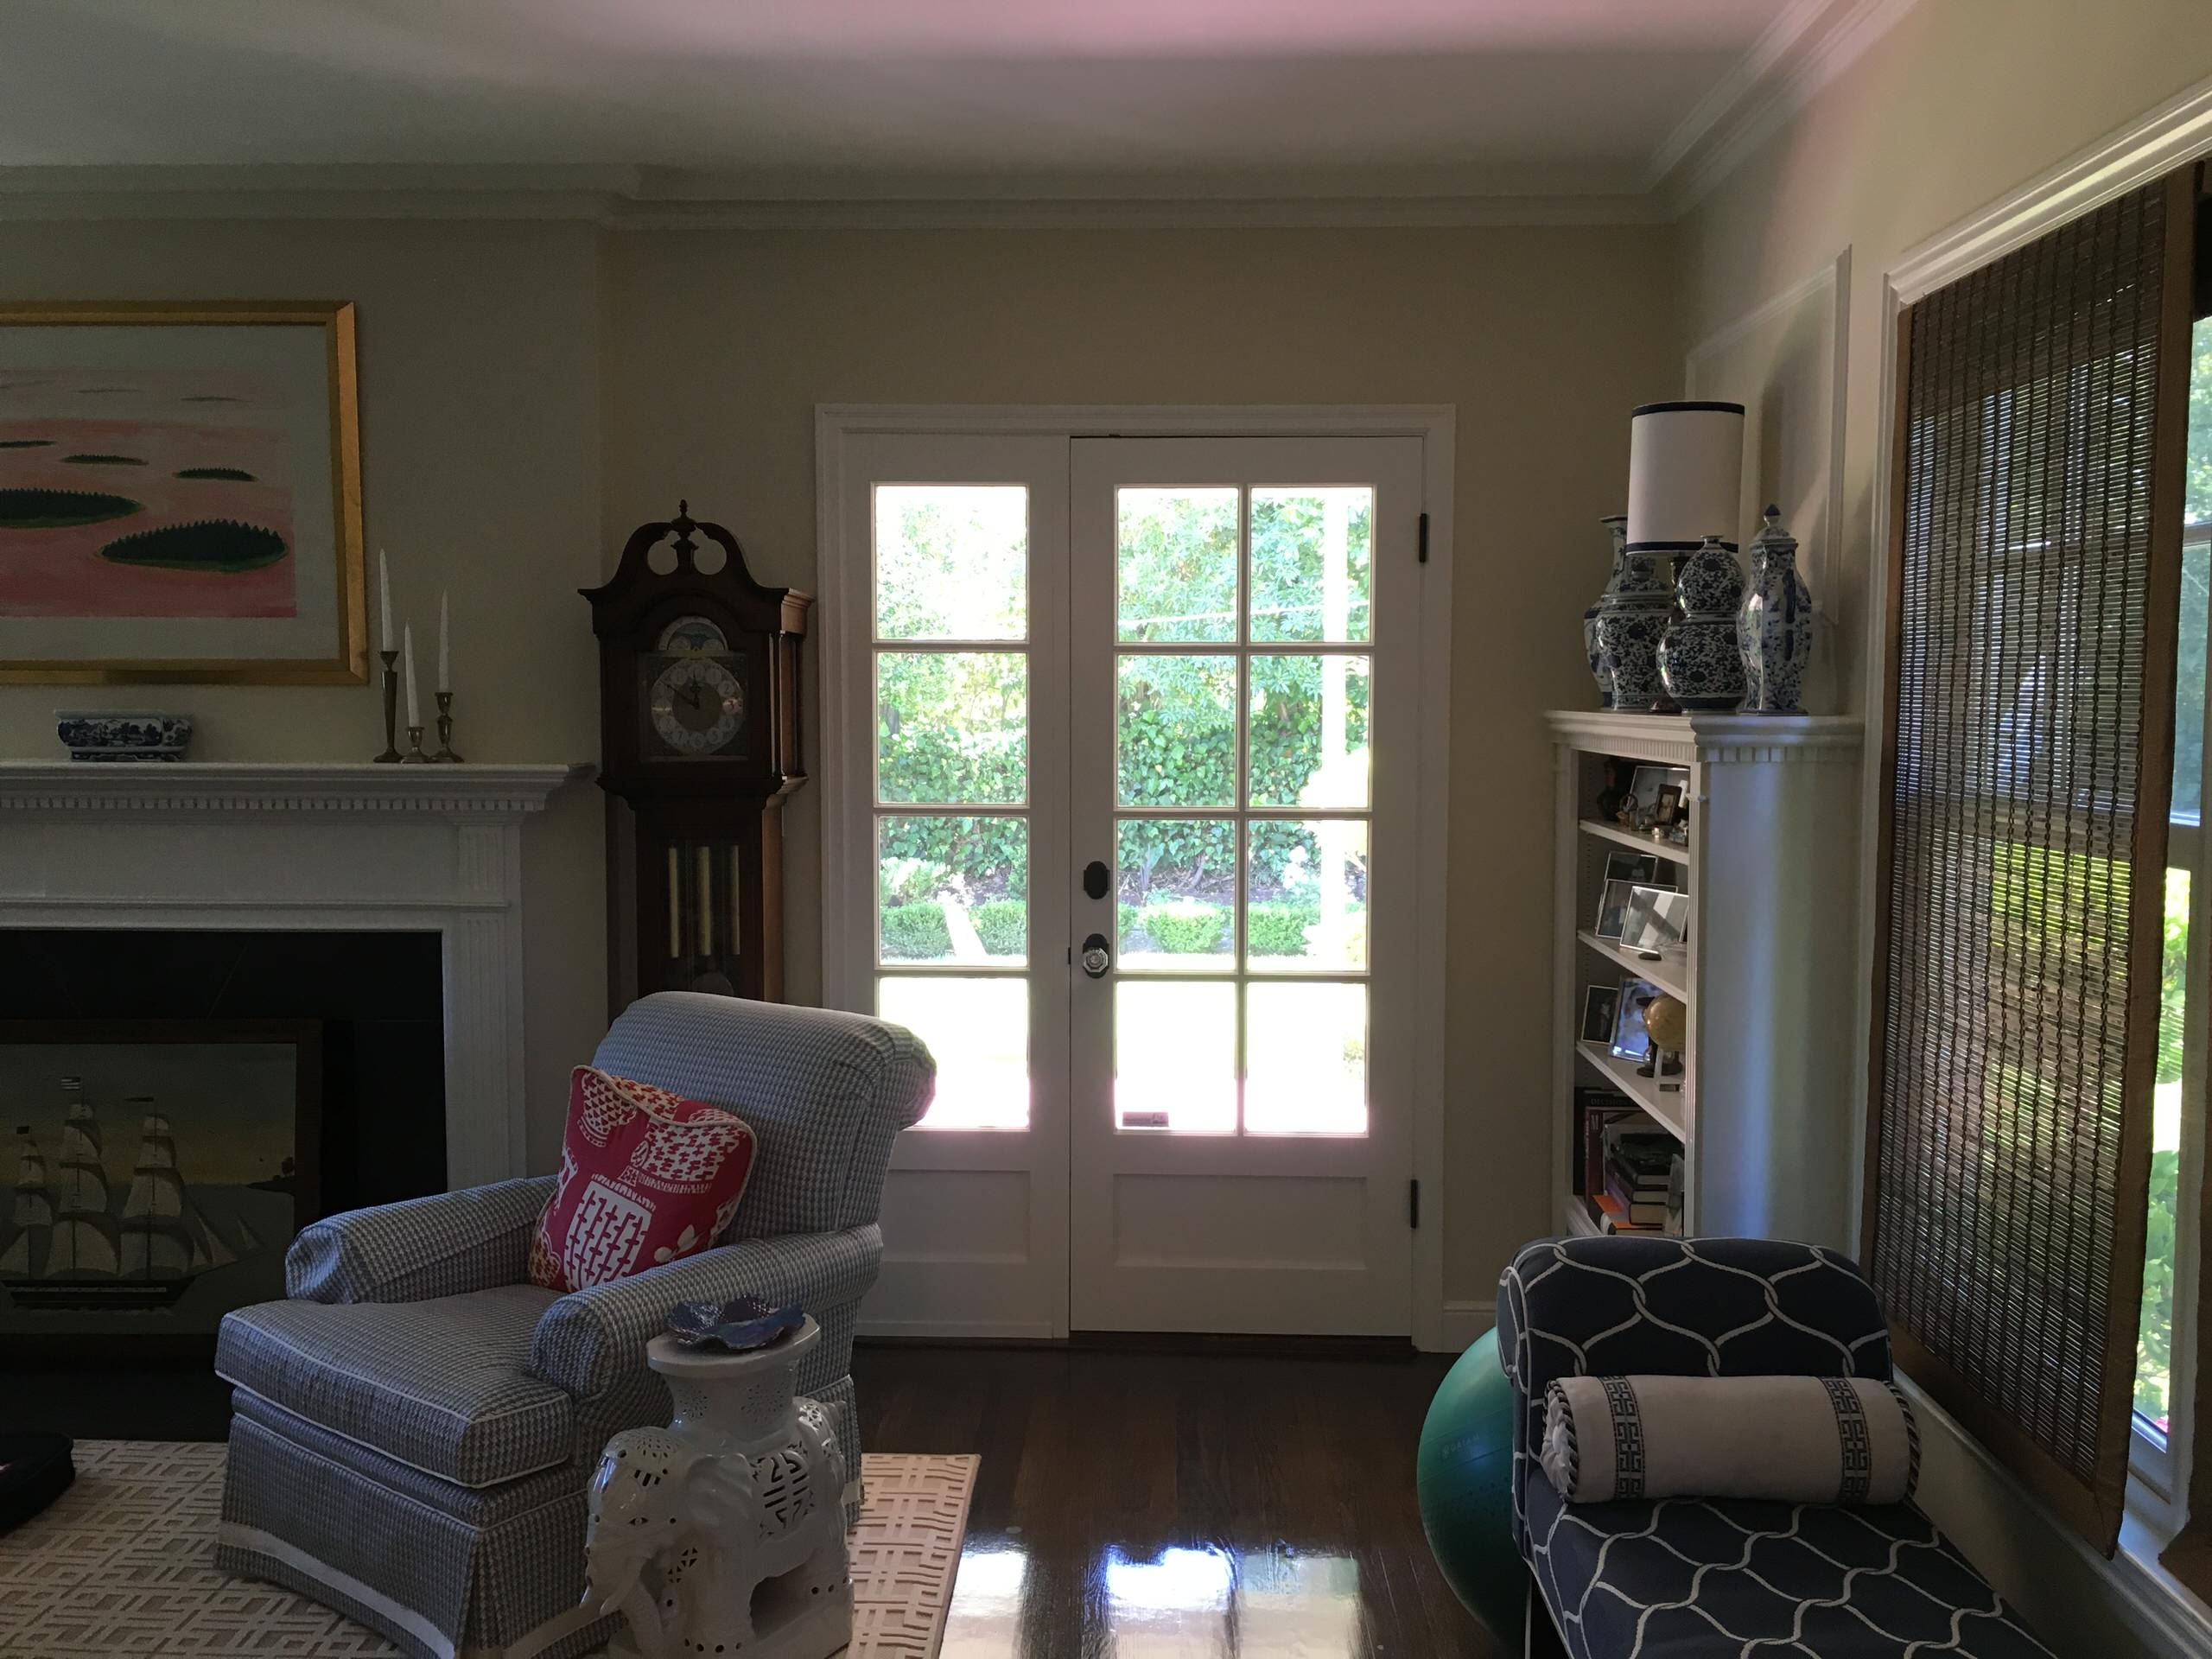 Colonial Revival - Living rm, before